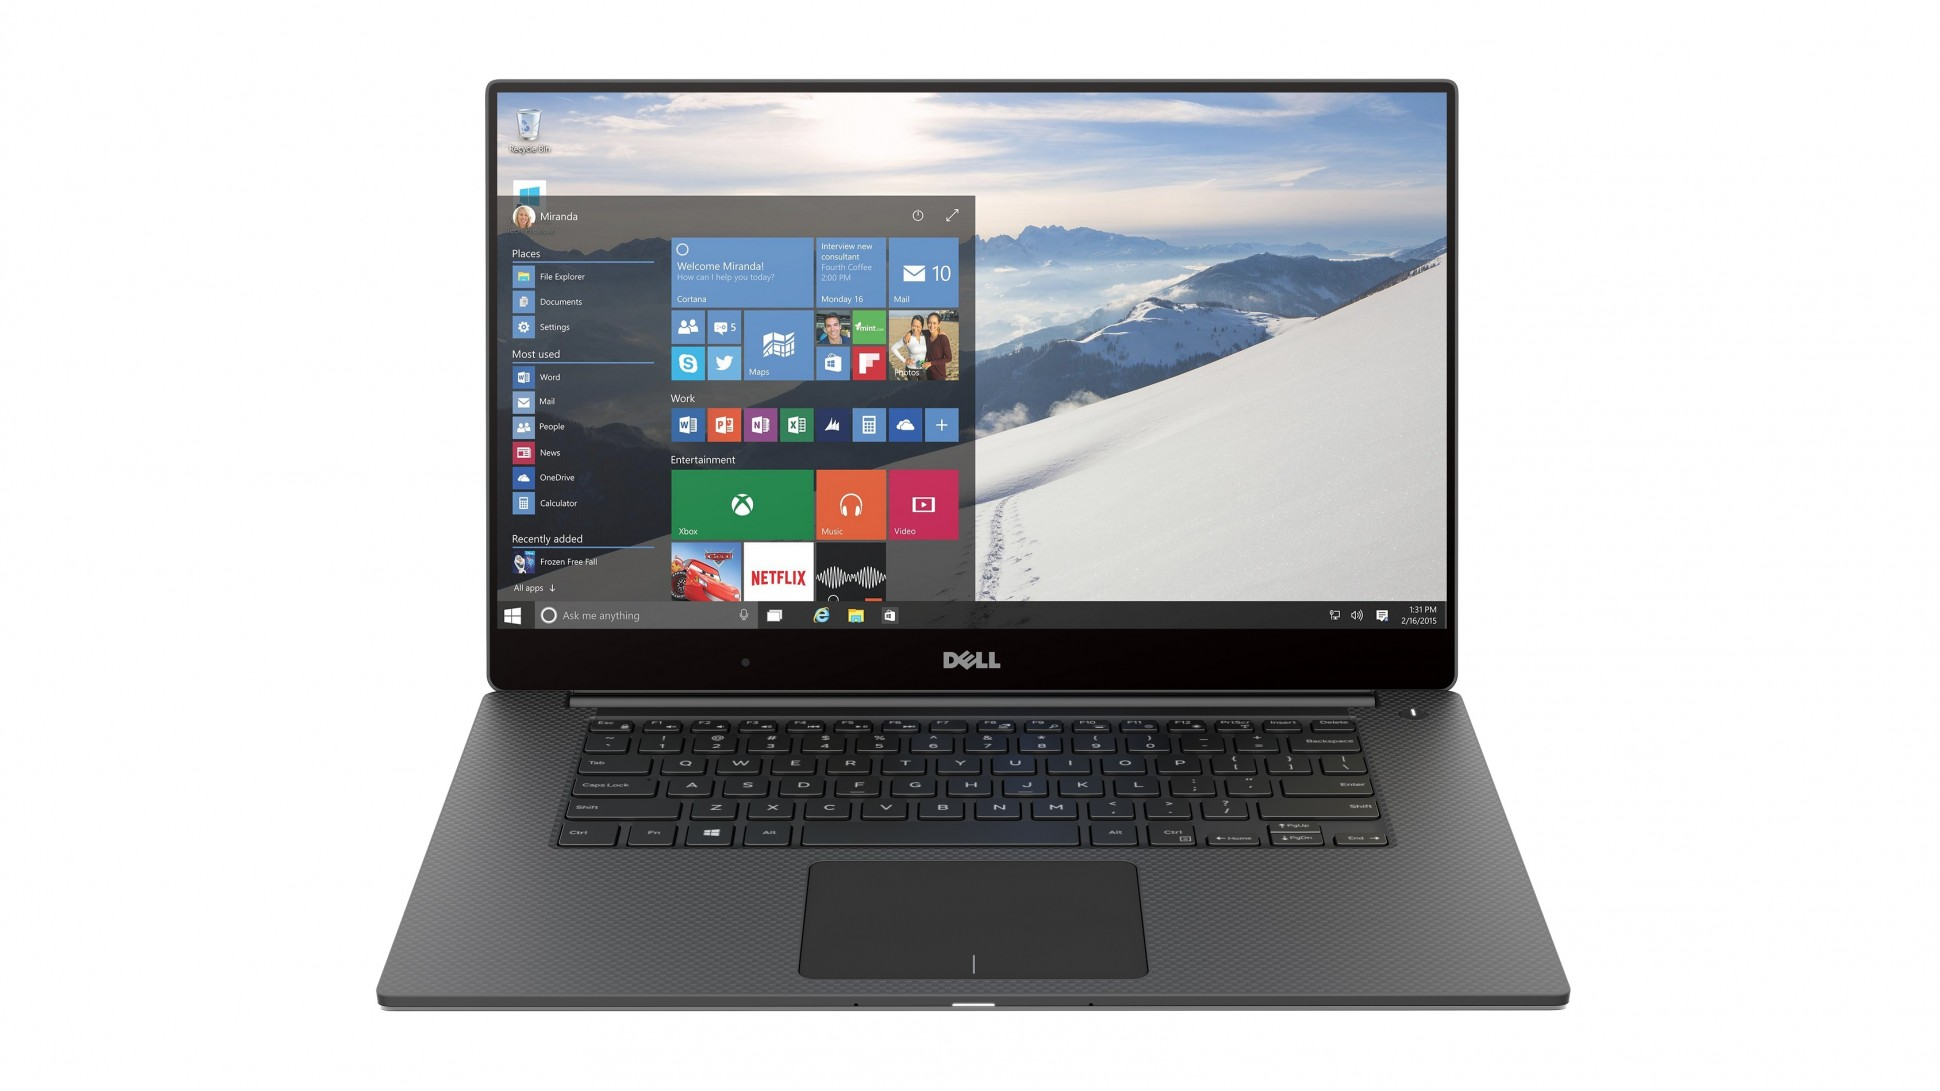 Dell XPS 15 (Kaby Lake 9560) review – geared up with new hardware